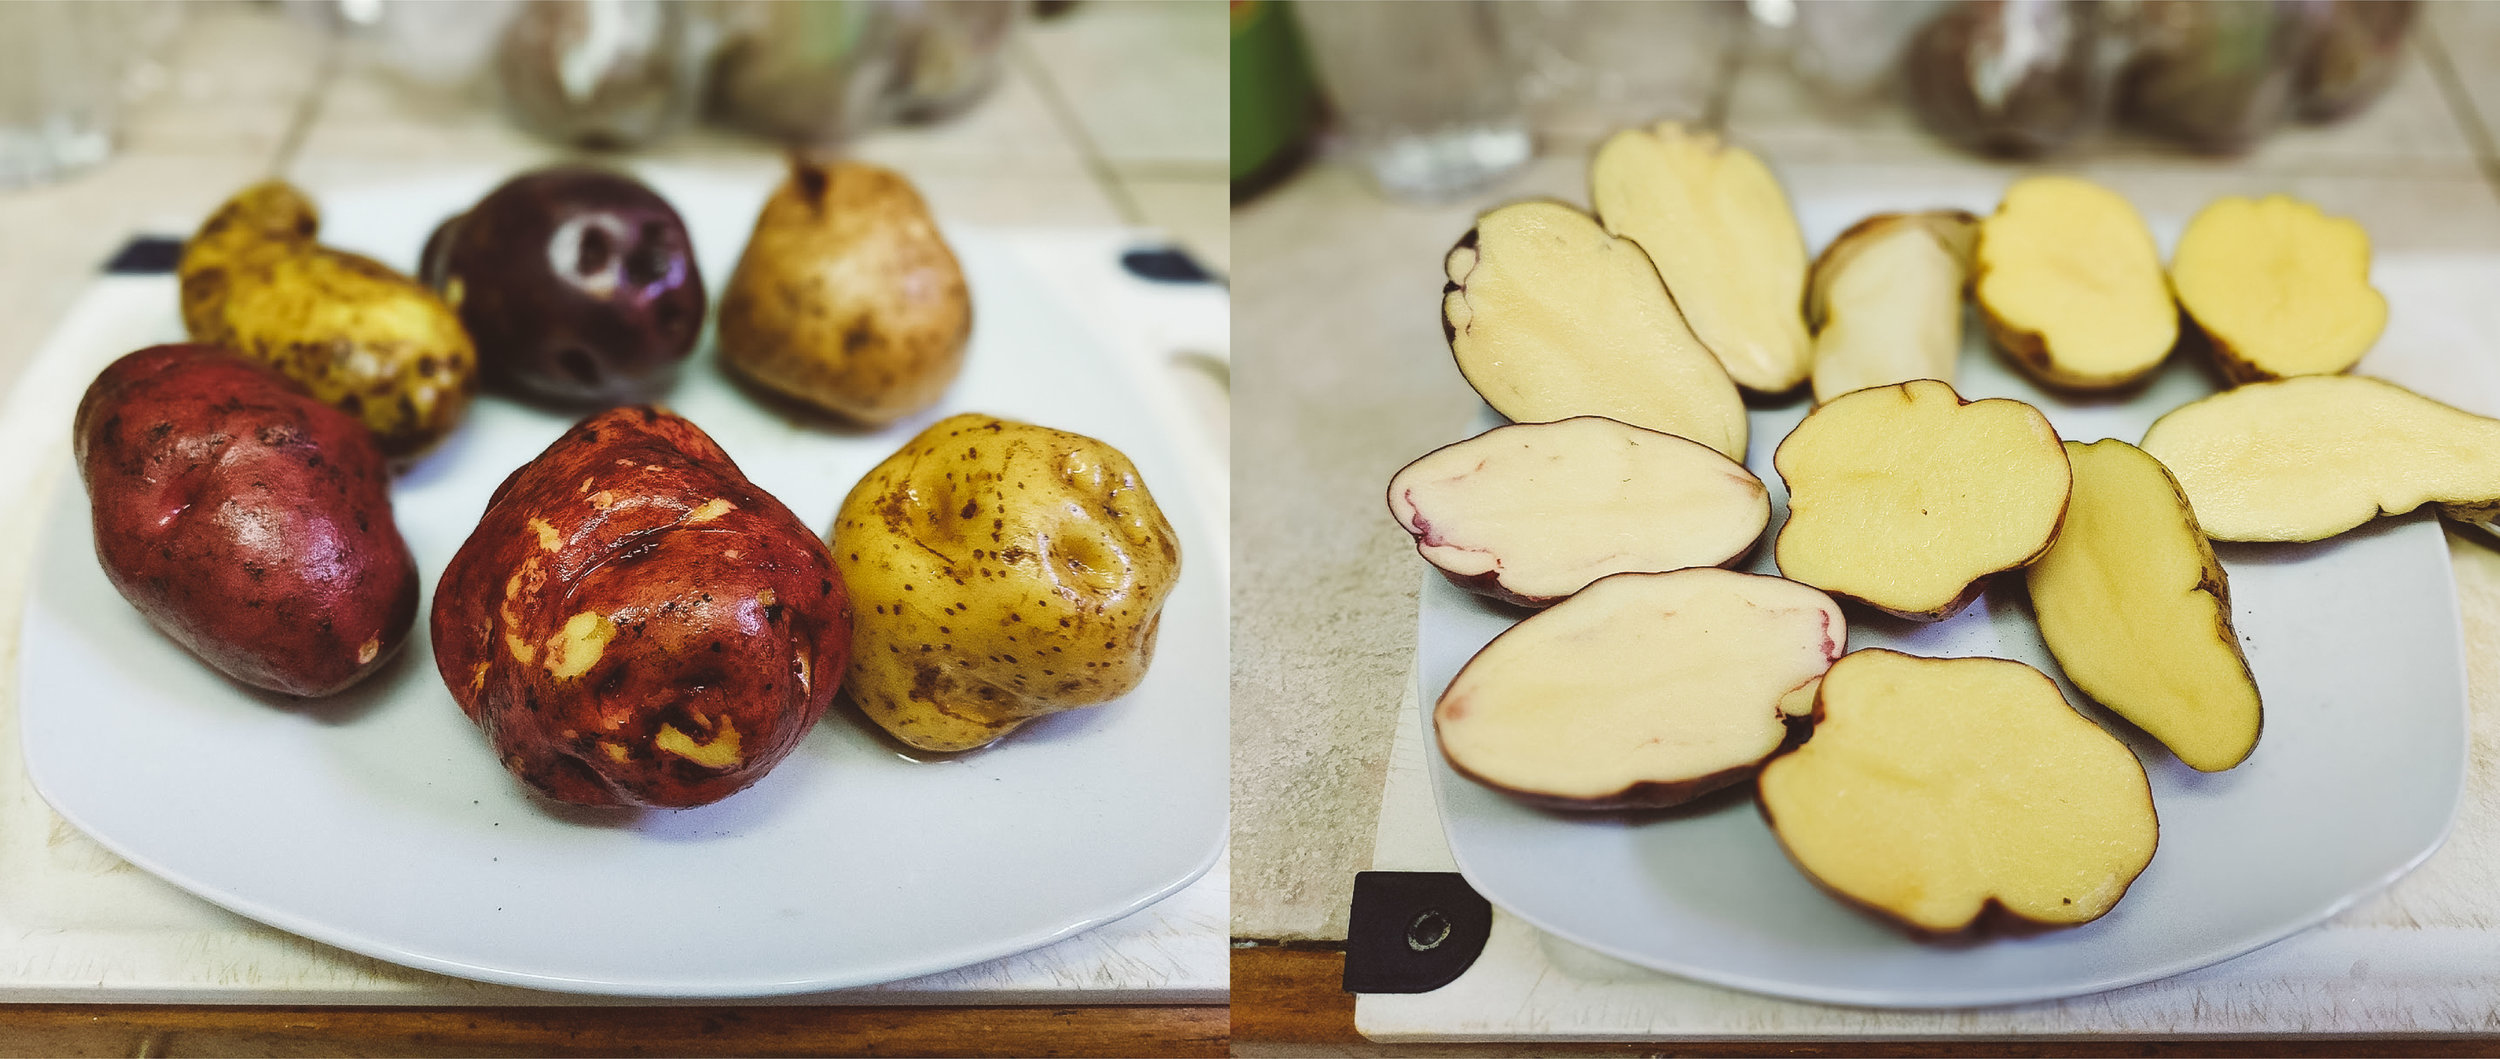 Six varieties of potatoes, but all while/yellow inside!